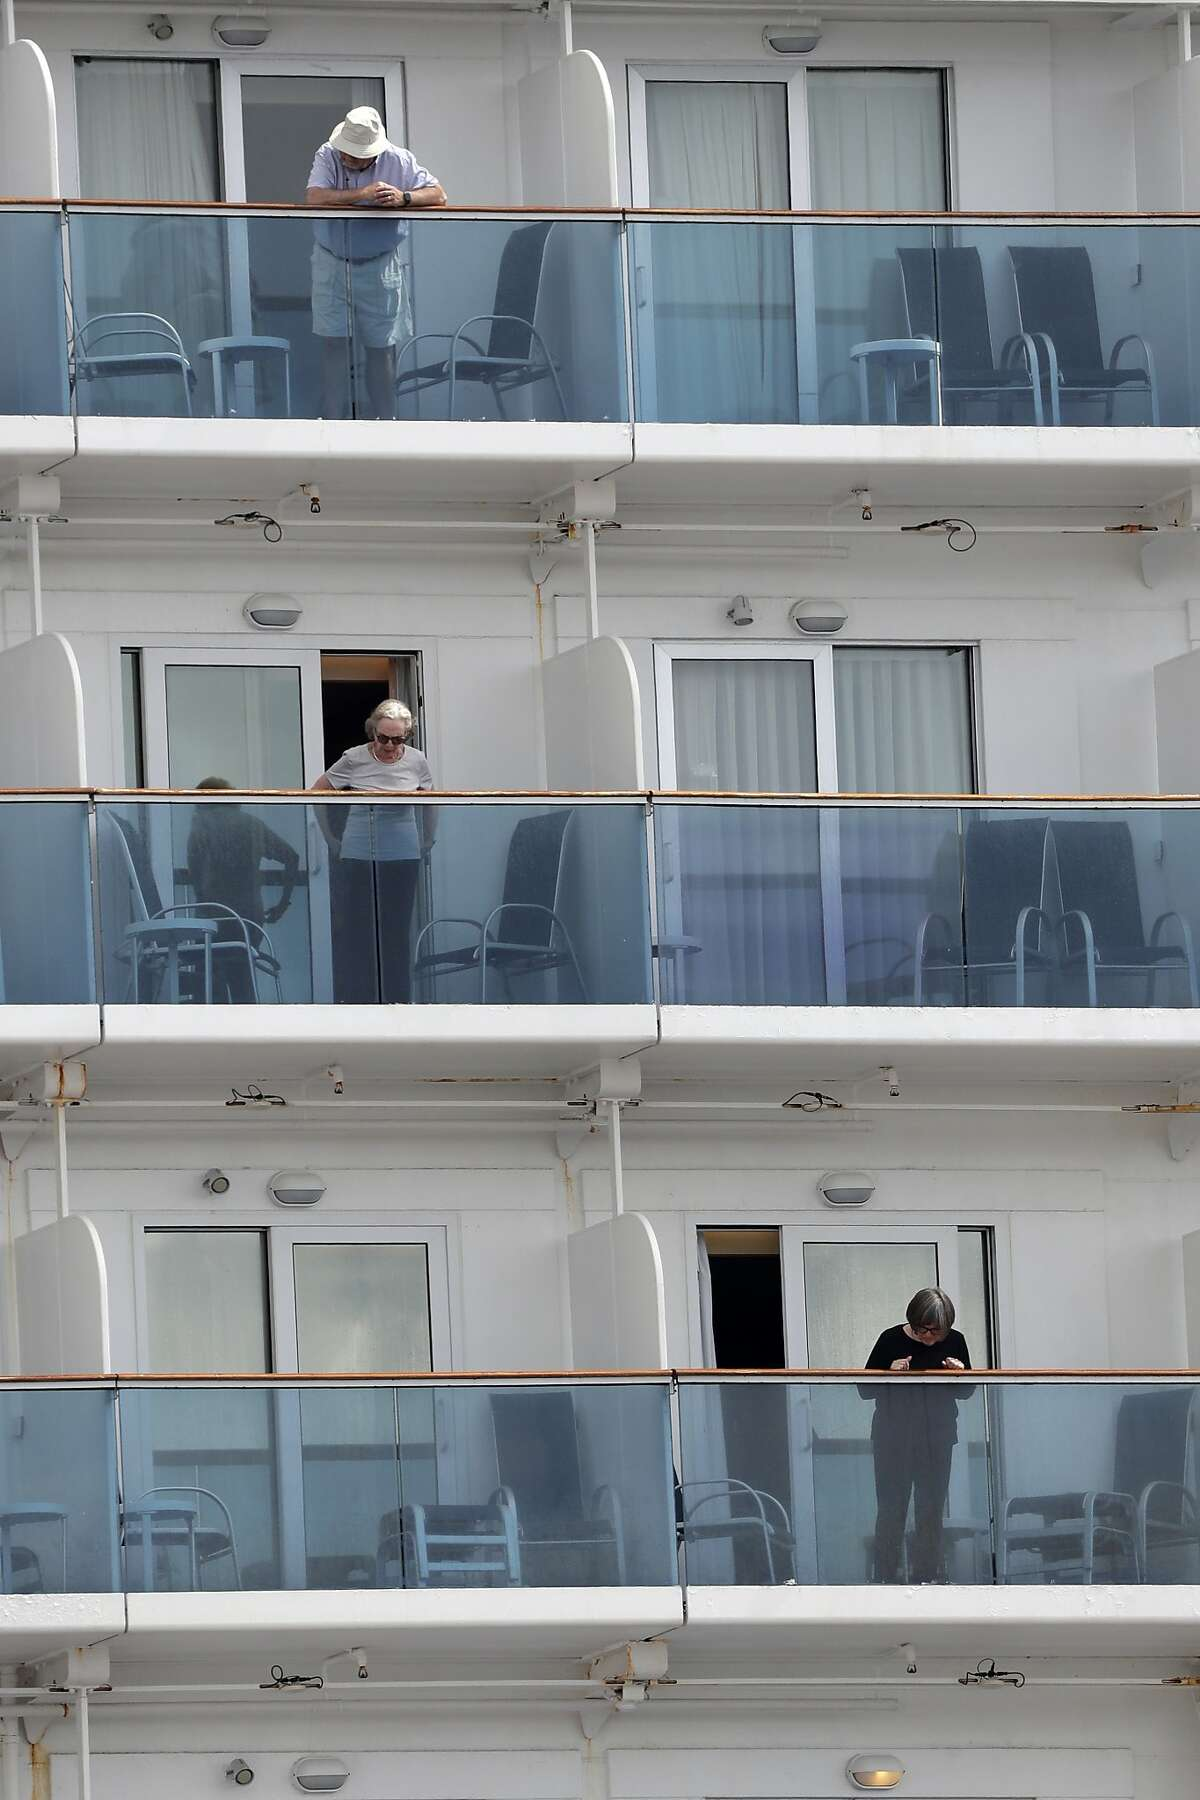 Passengers look out from their balconies on the Coral Princess cruise ship while docked at PortMiami during the new coronavirus outbreak, Monday, April 6, 2020, in Miami. According to Princess Cruises, disembarkation of guests is expected to take several days due to limited flight availability. (AP Photo/Wilfredo Lee)